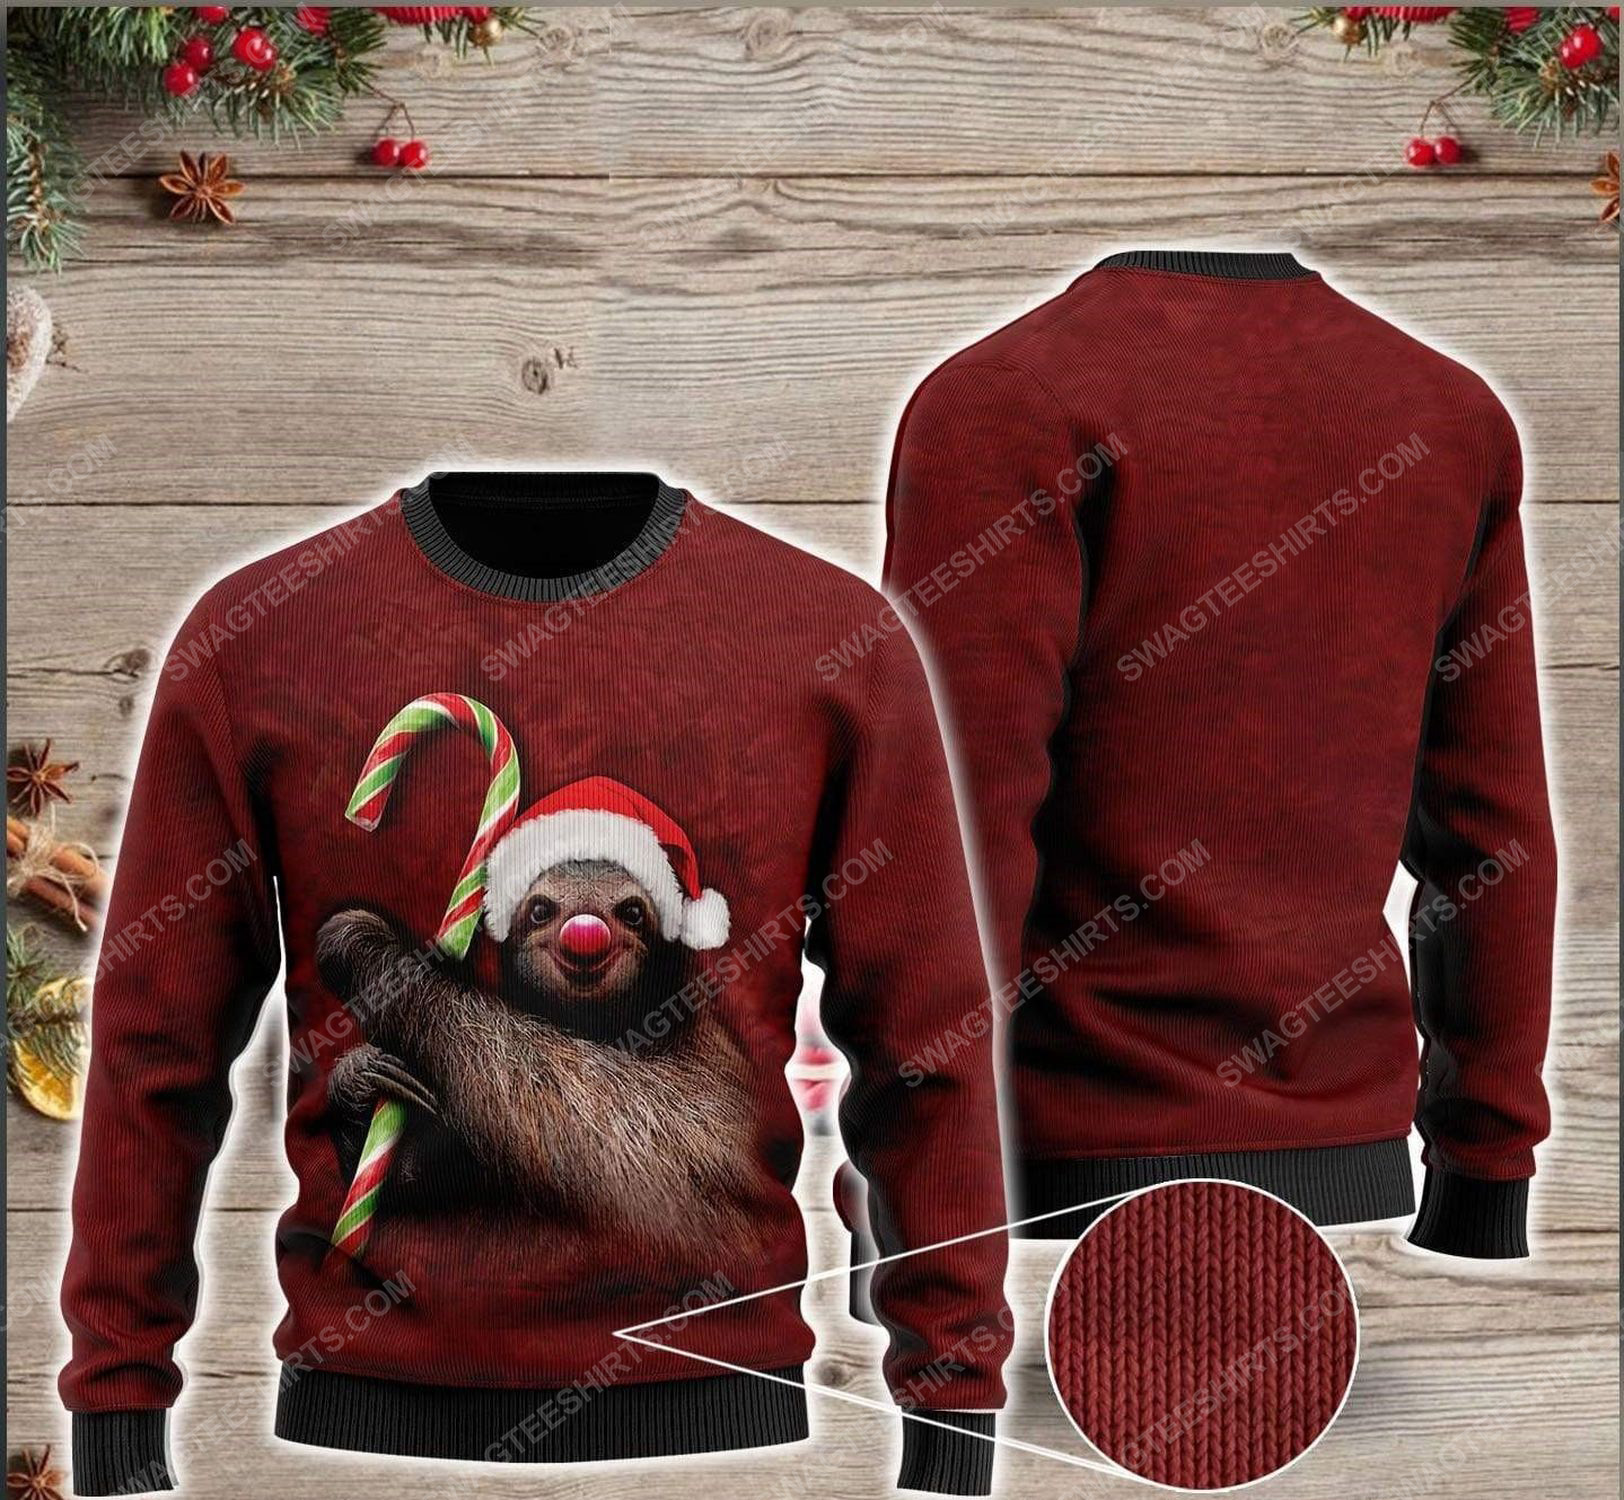 Sloth and candy cane all over print ugly christmas sweater 1 - Copy (2)